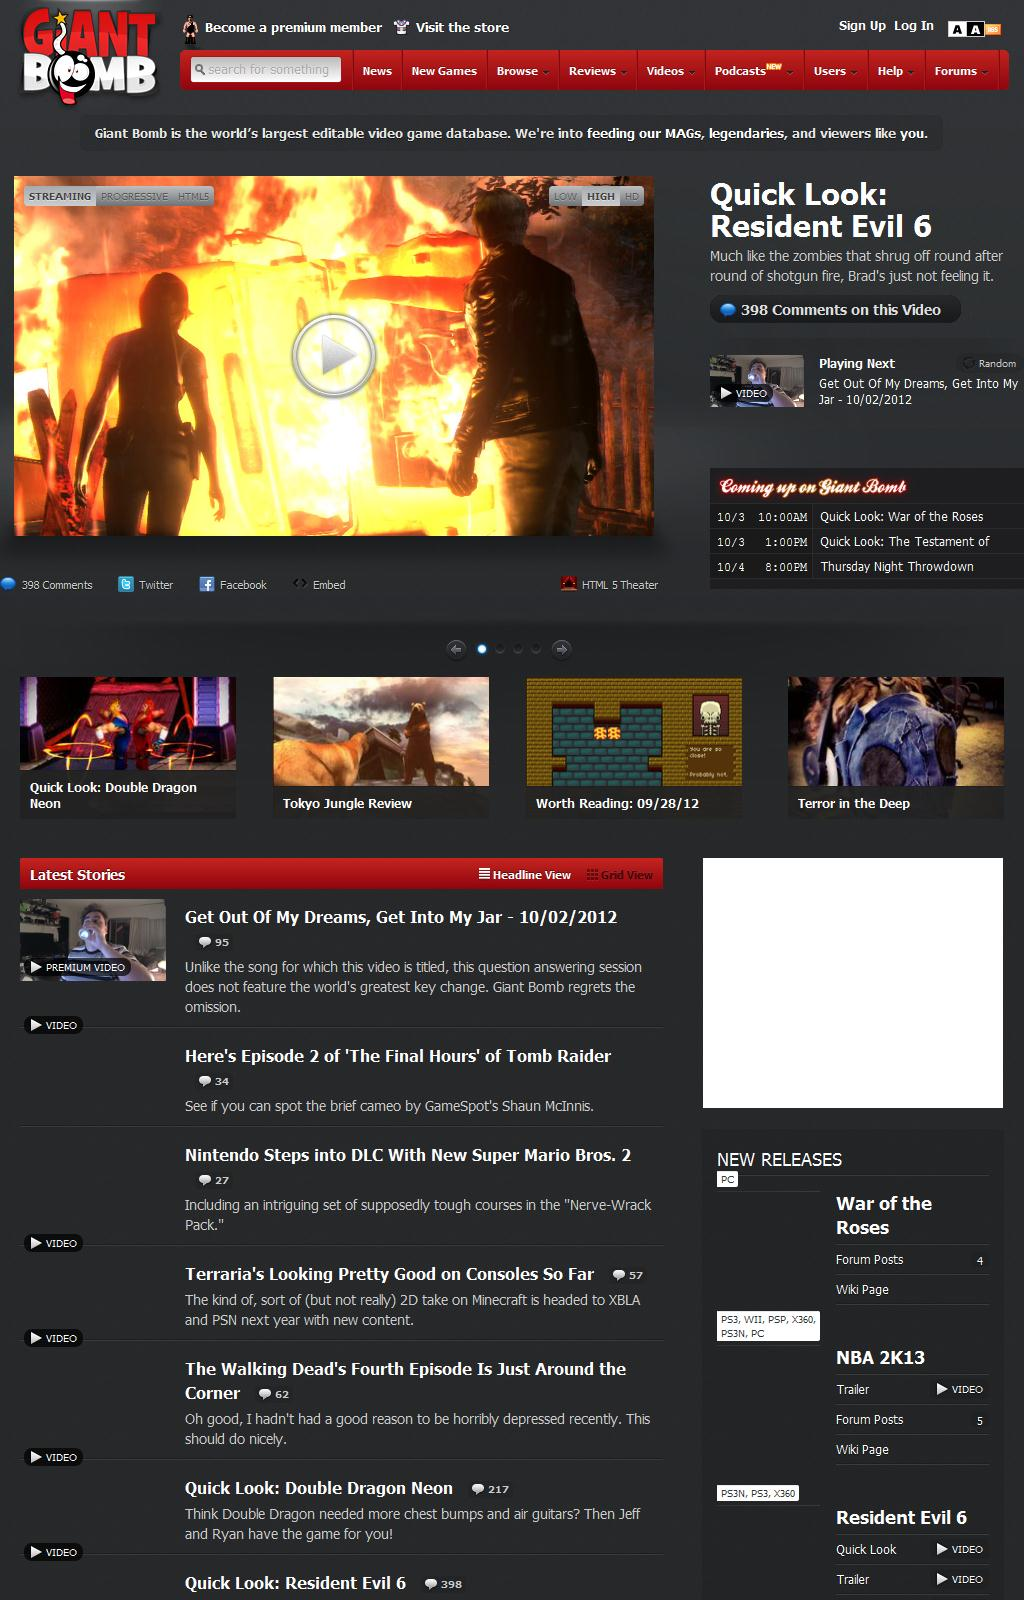 GiantBomb.com ~ Video Game Reviews, News, Videos & Forums - Giant Bomb